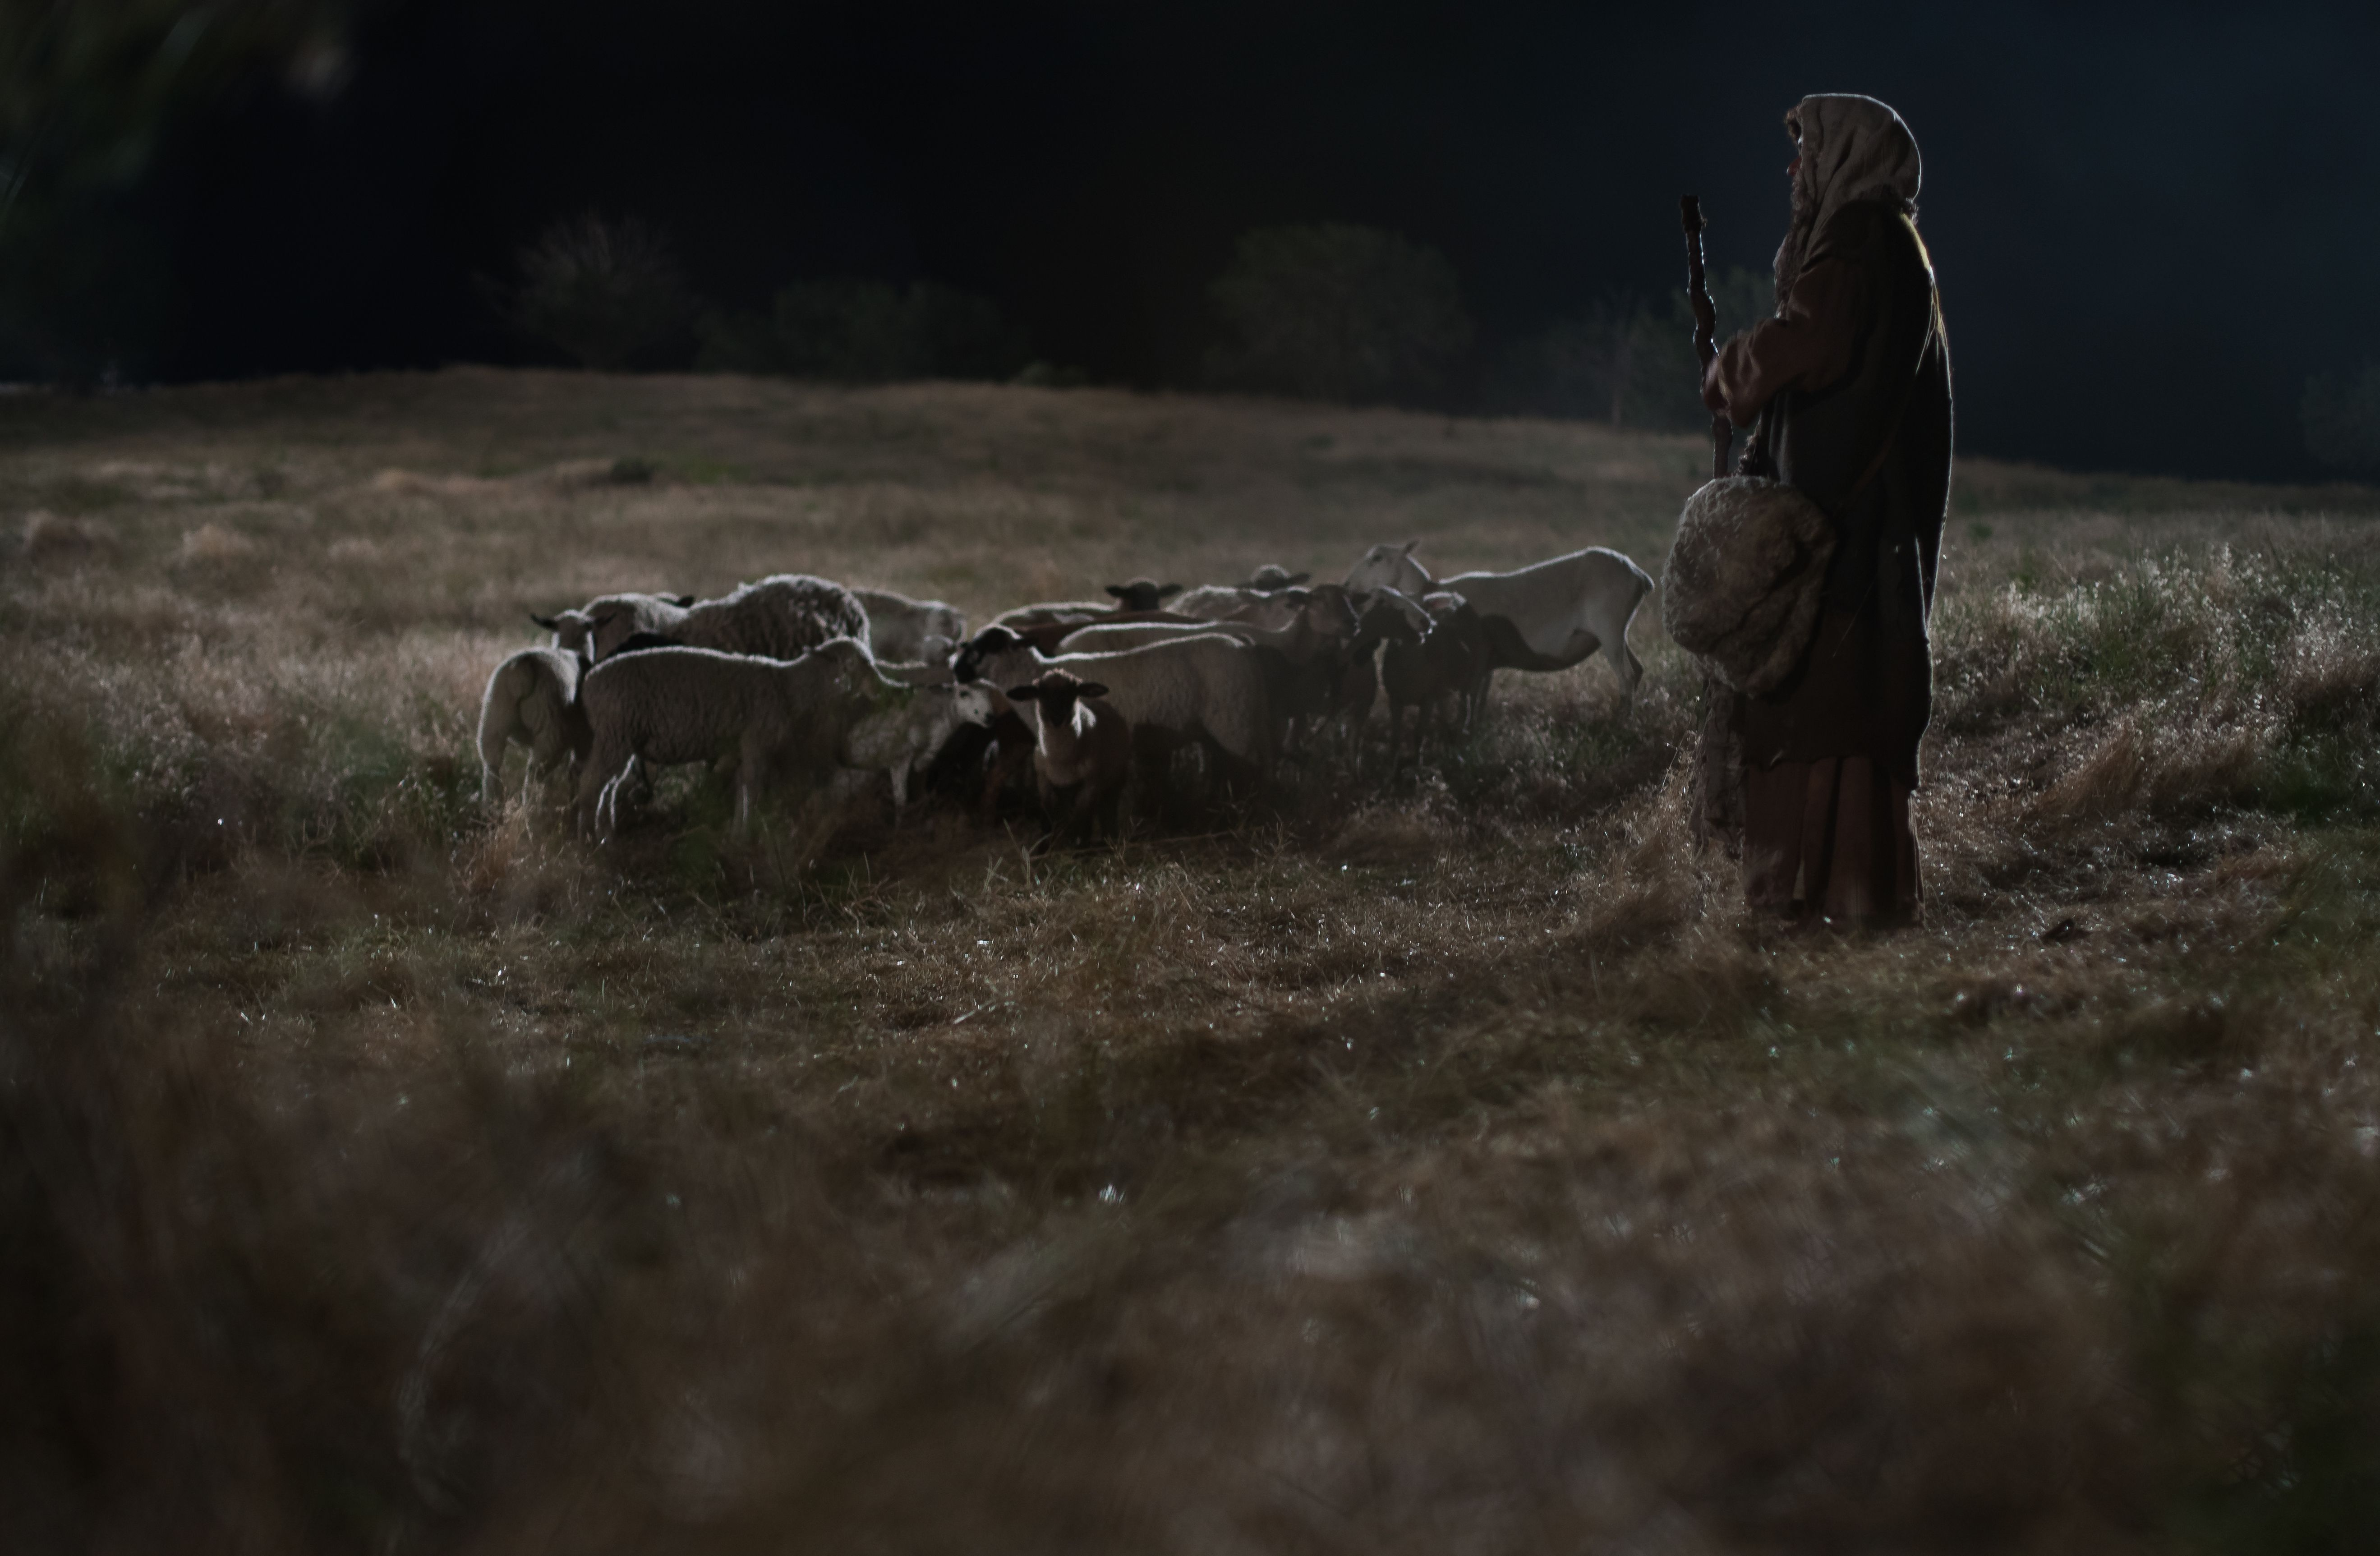 A shepherd stands alone in a field at night with his sheep.